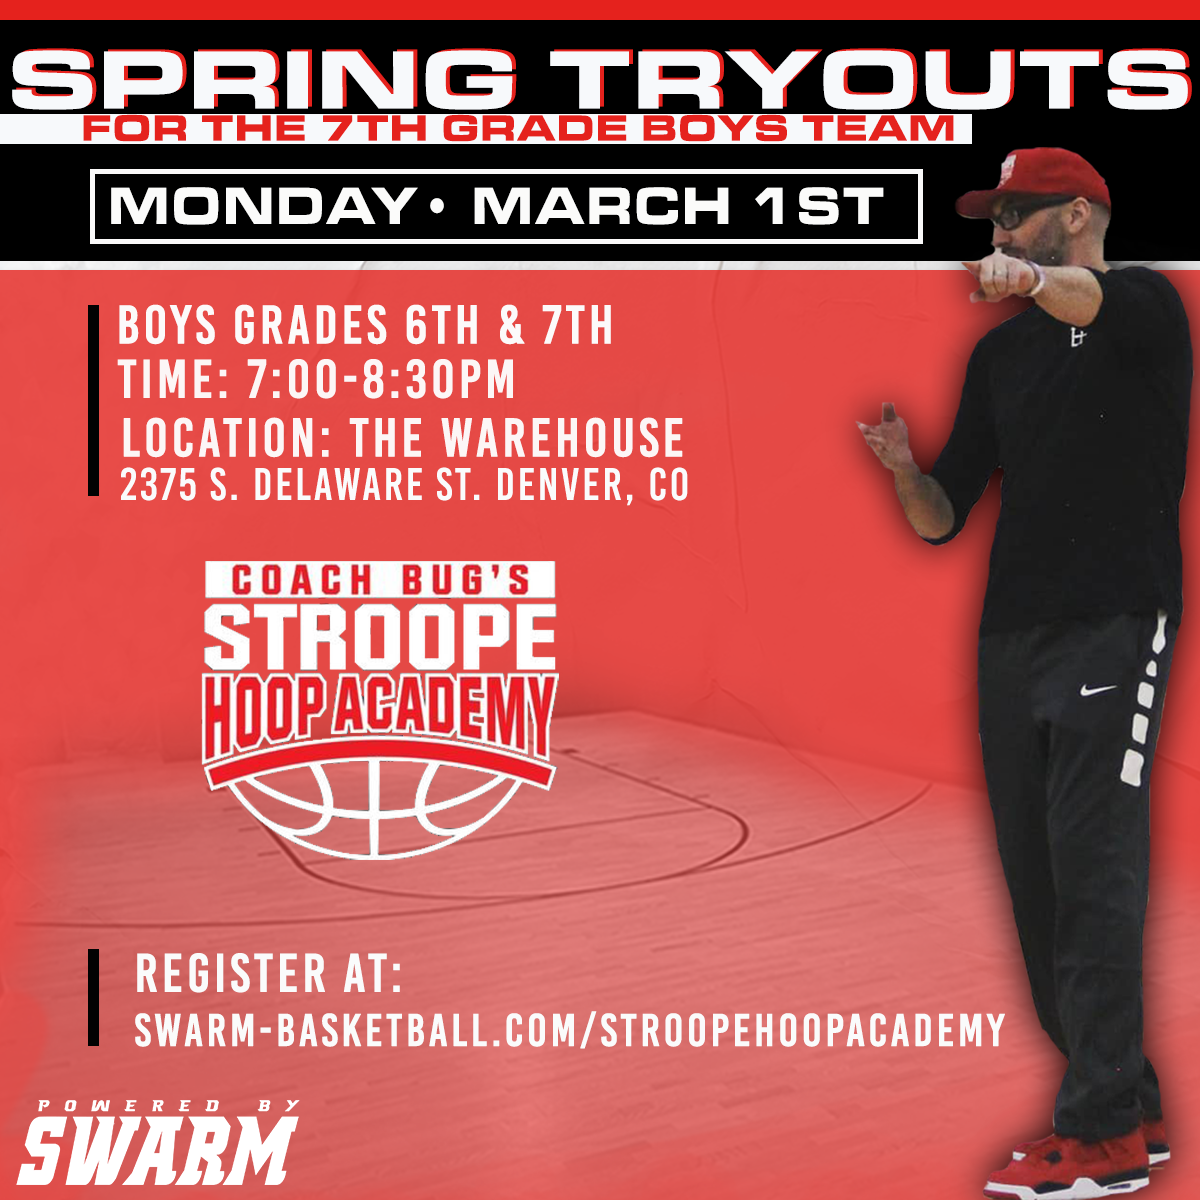 ColoradoSpring21Tryouts_Bug